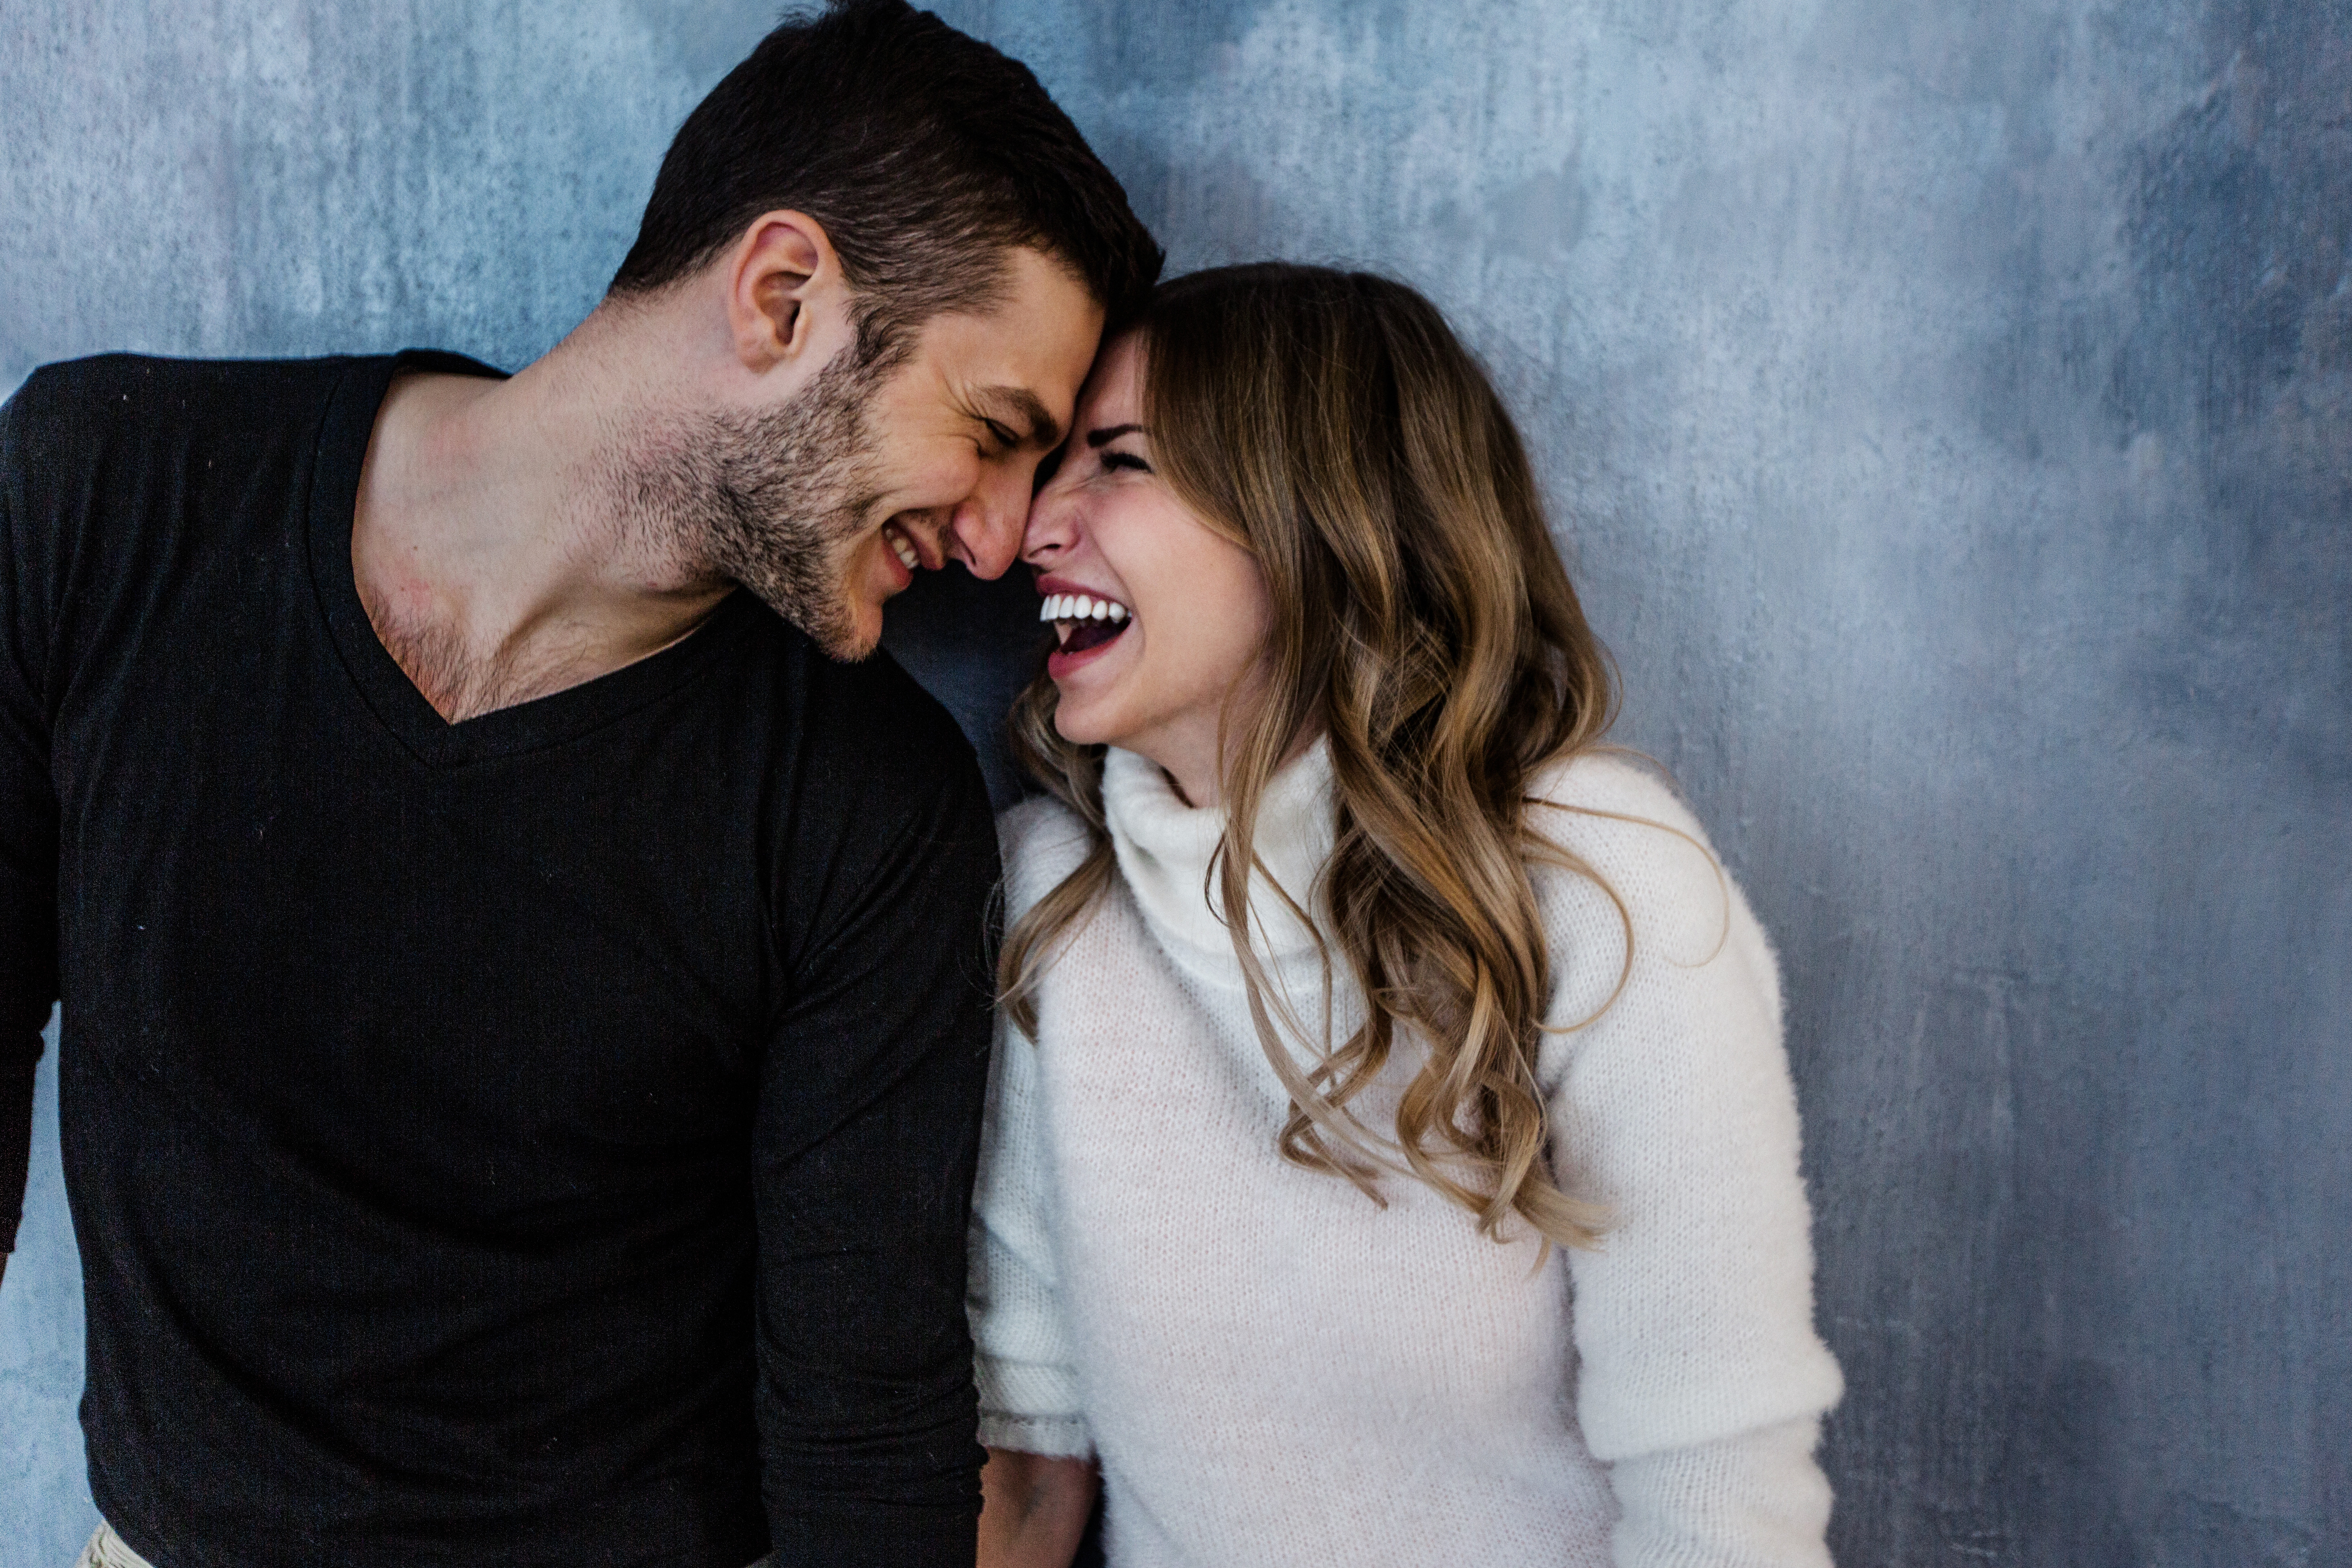 man and woman laughing together, what he wants you to say